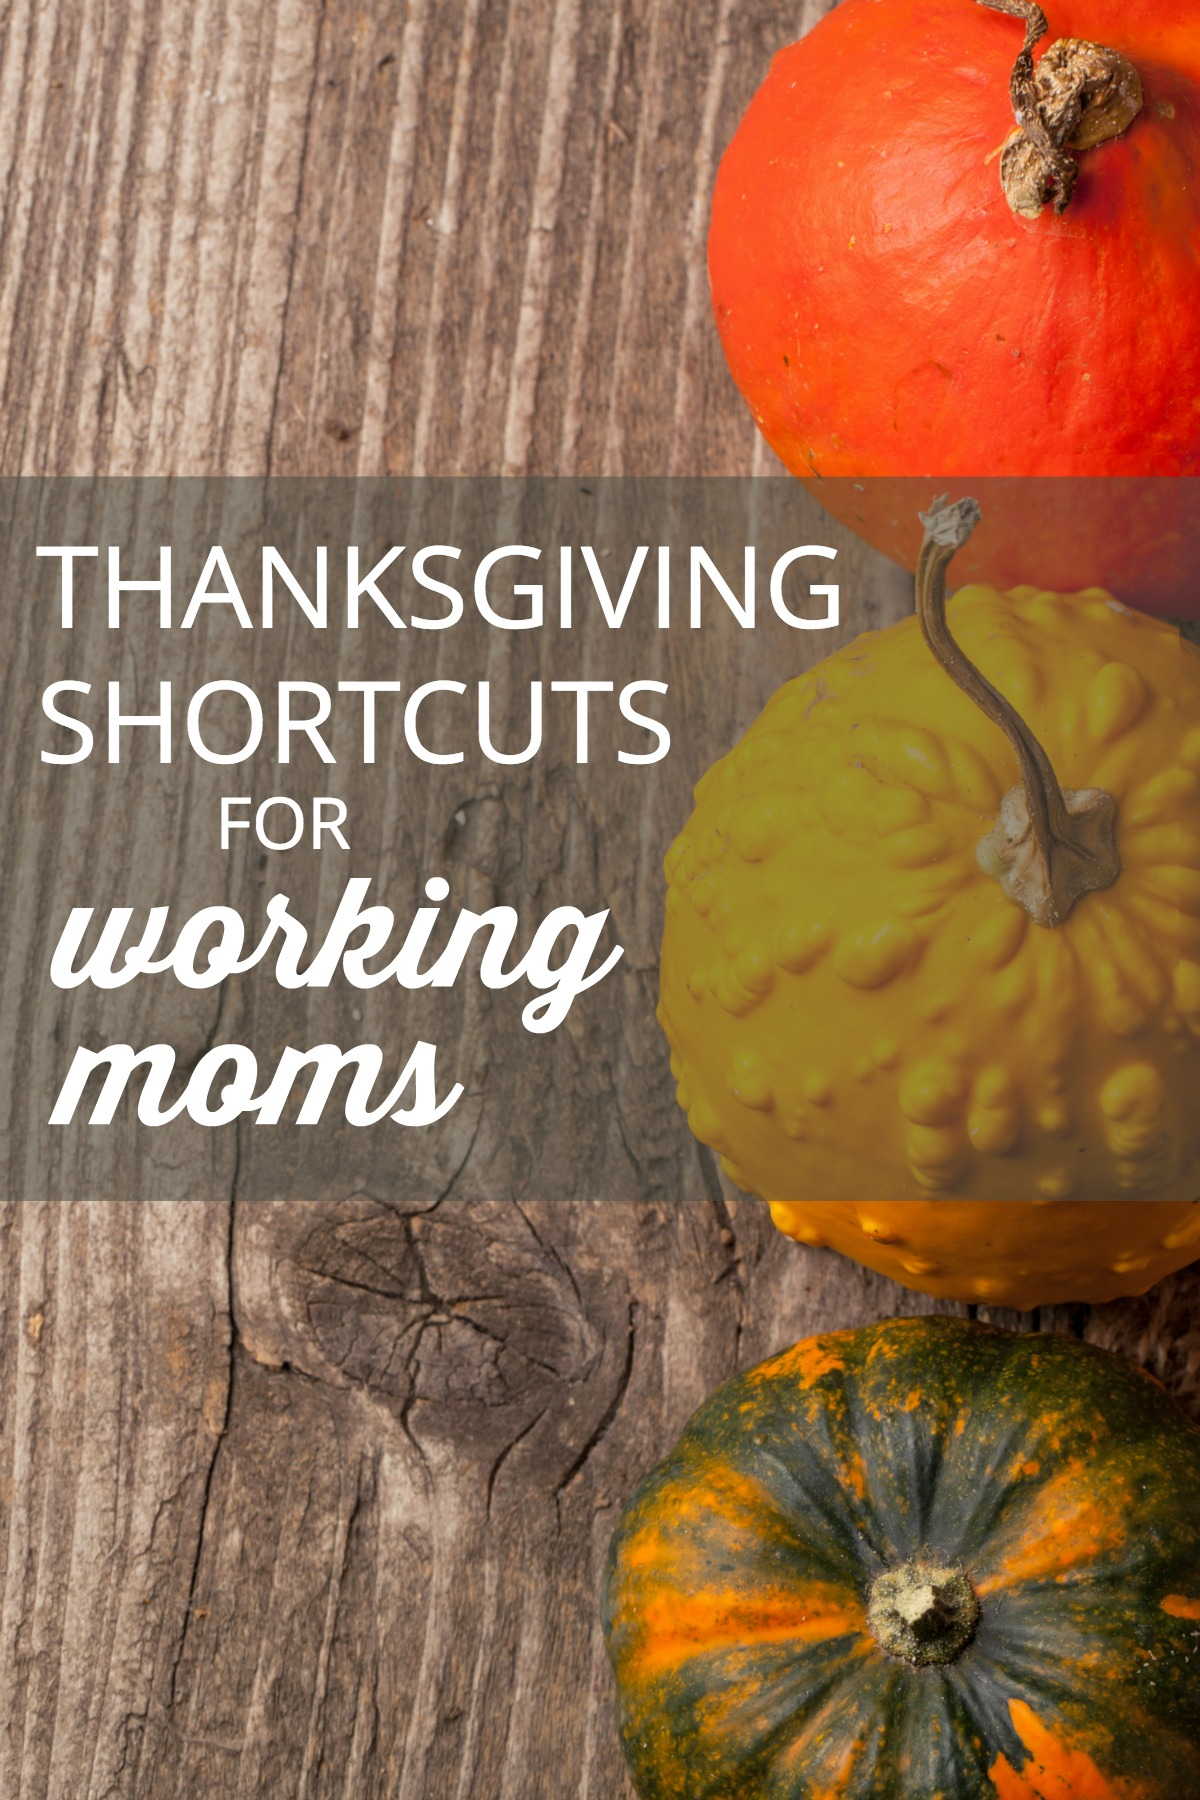 Want to actually enjoy your Thanksgiving this year? Follow these low-stress Thanksgiving tips for working moms who don't have time to Pinterest it out.